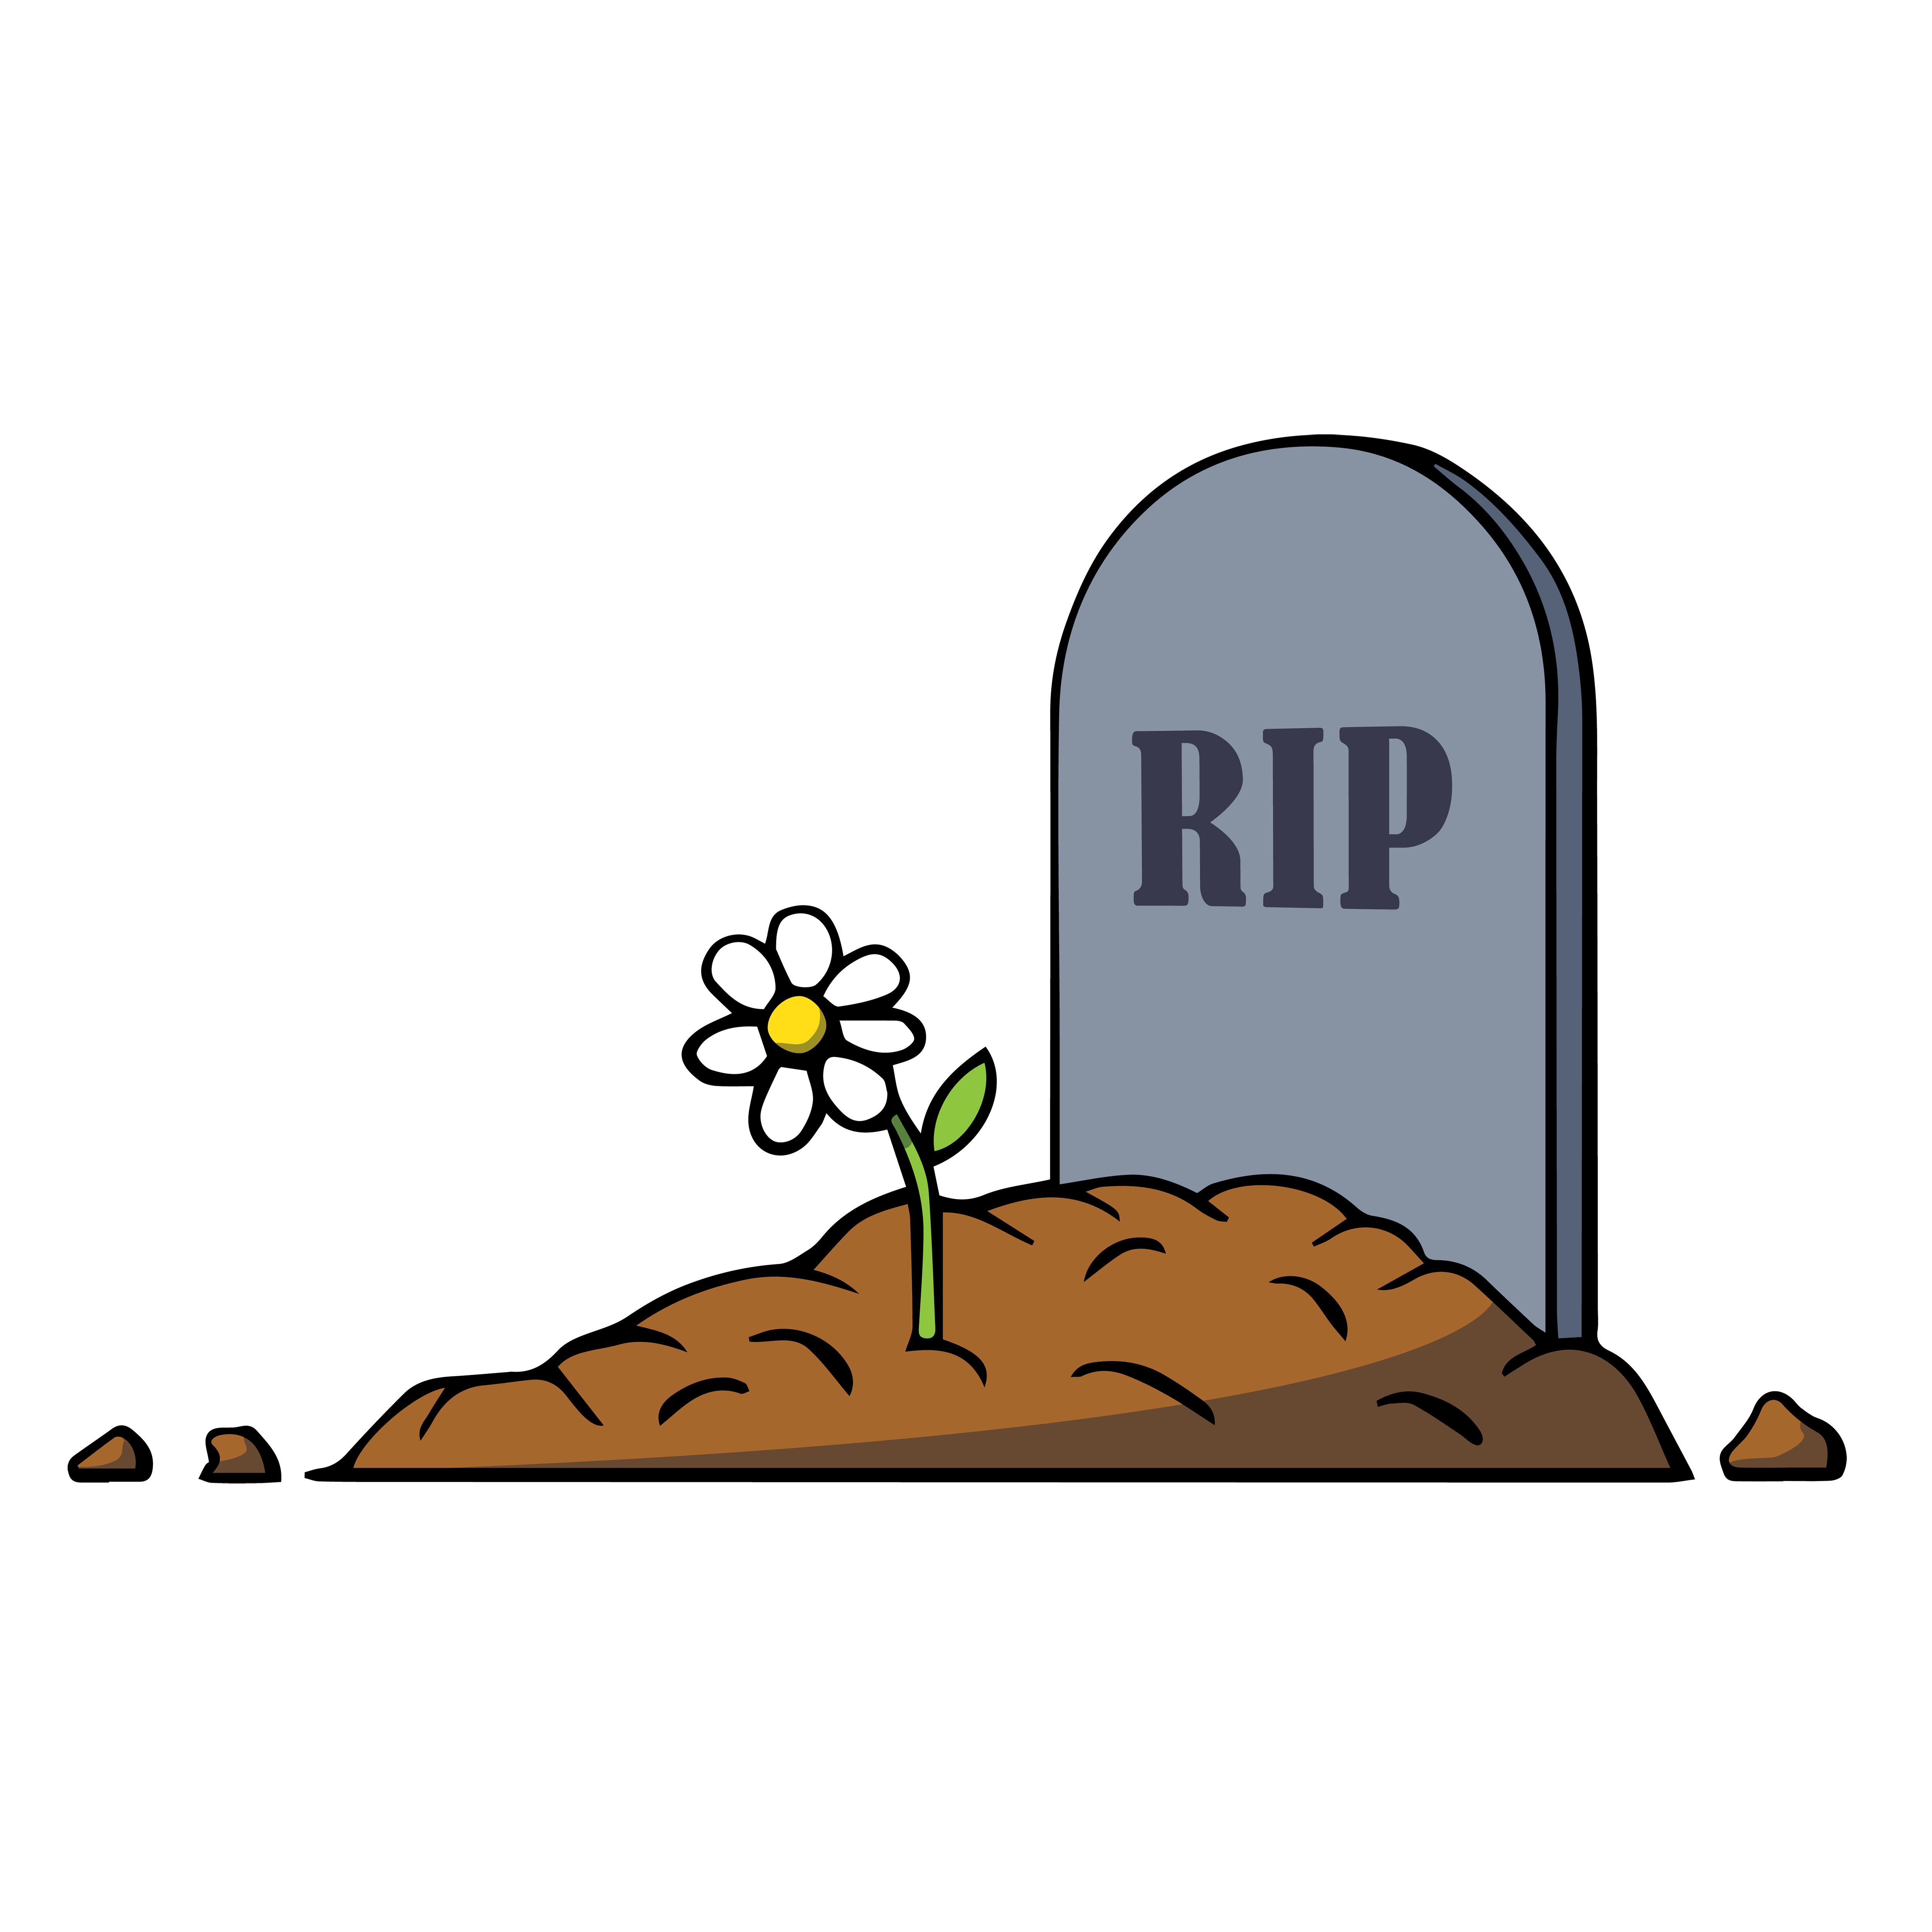 clipart transparent Free headstone cliparts download. Grave clipart